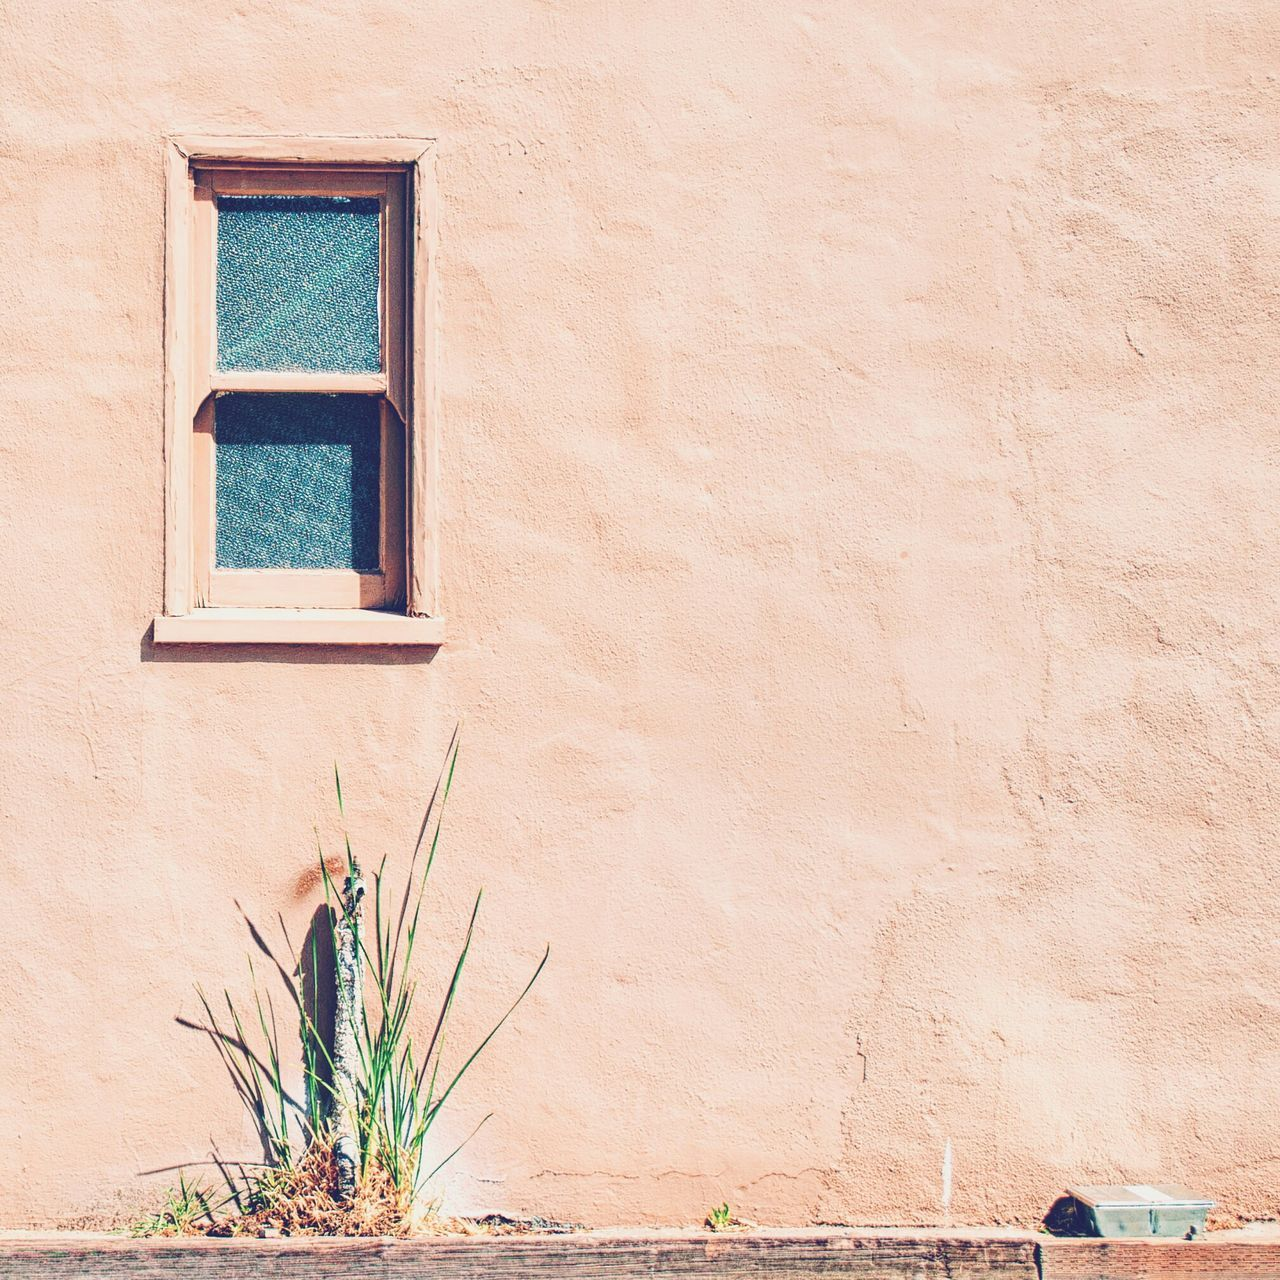 Window On The Wall! Taking Photos Check This Out EyeEm Team Minimal Minimalist Minimalism Eye4photography  Streetphotography Vscocam EyeEm Best Shots Eyeemphoto TakeoverContrast The Week On Eyem